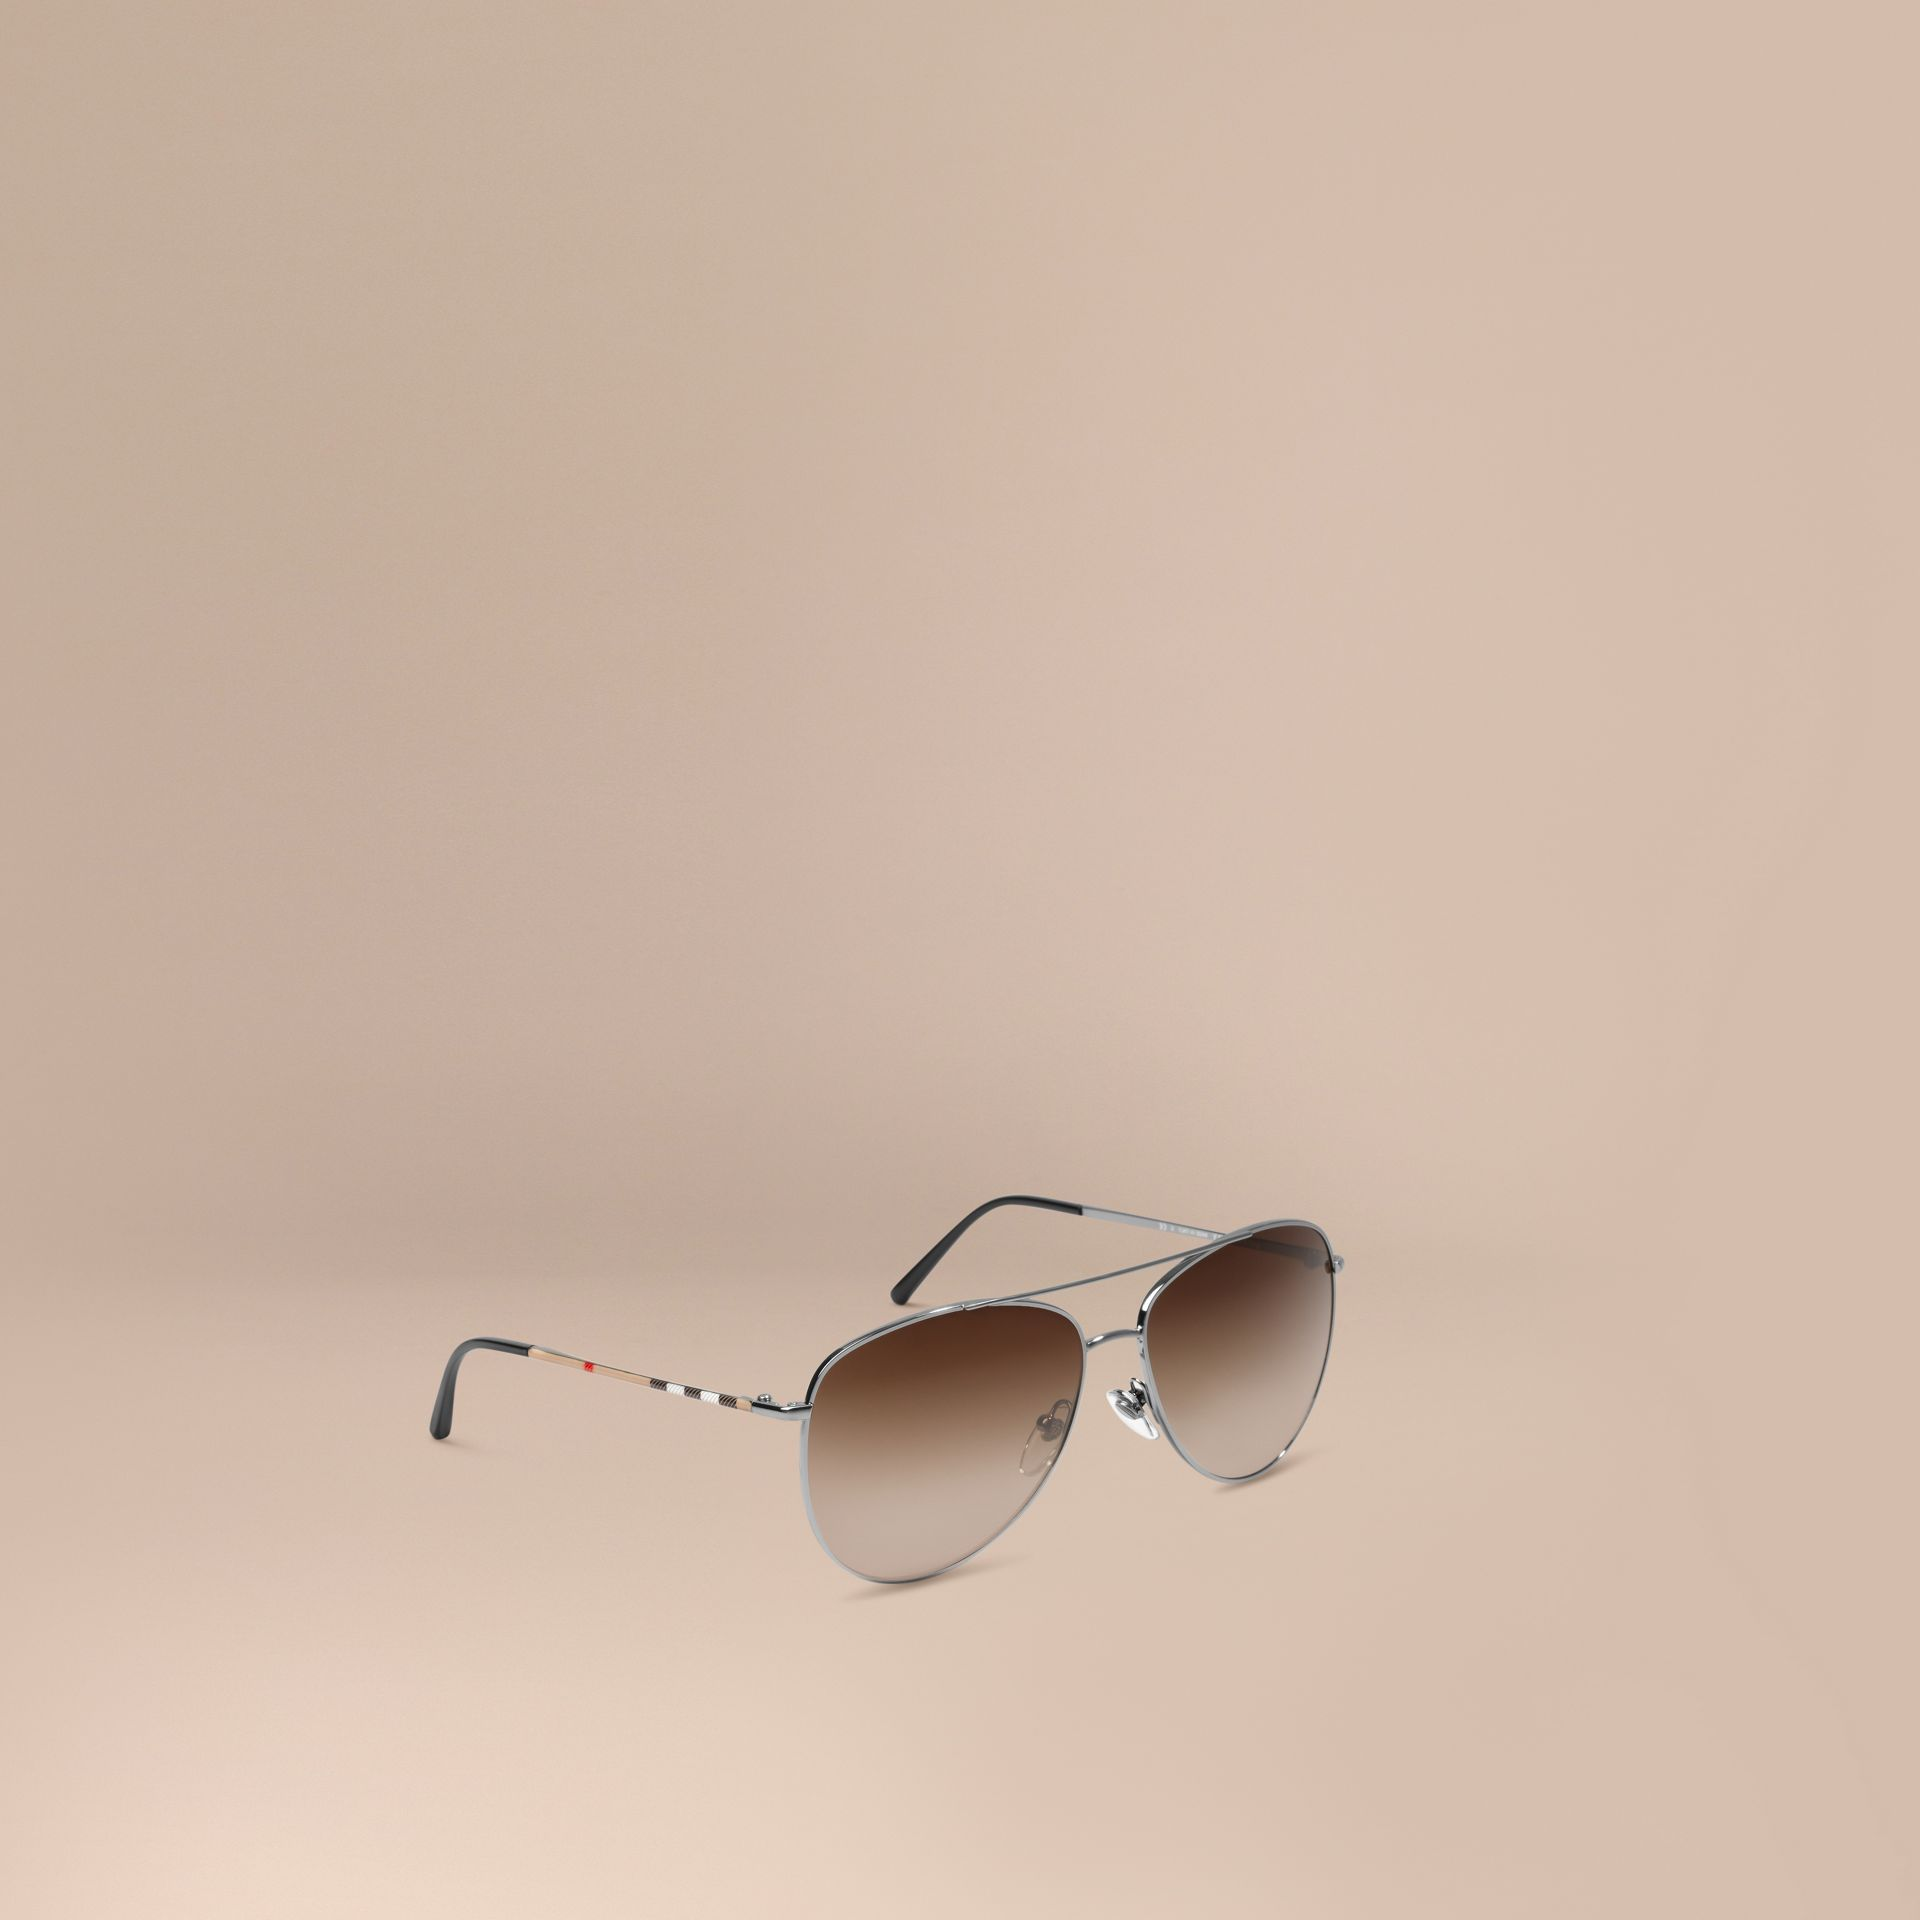 Nickel Check Arm Pilot Sunglasses Nickel - gallery image 1